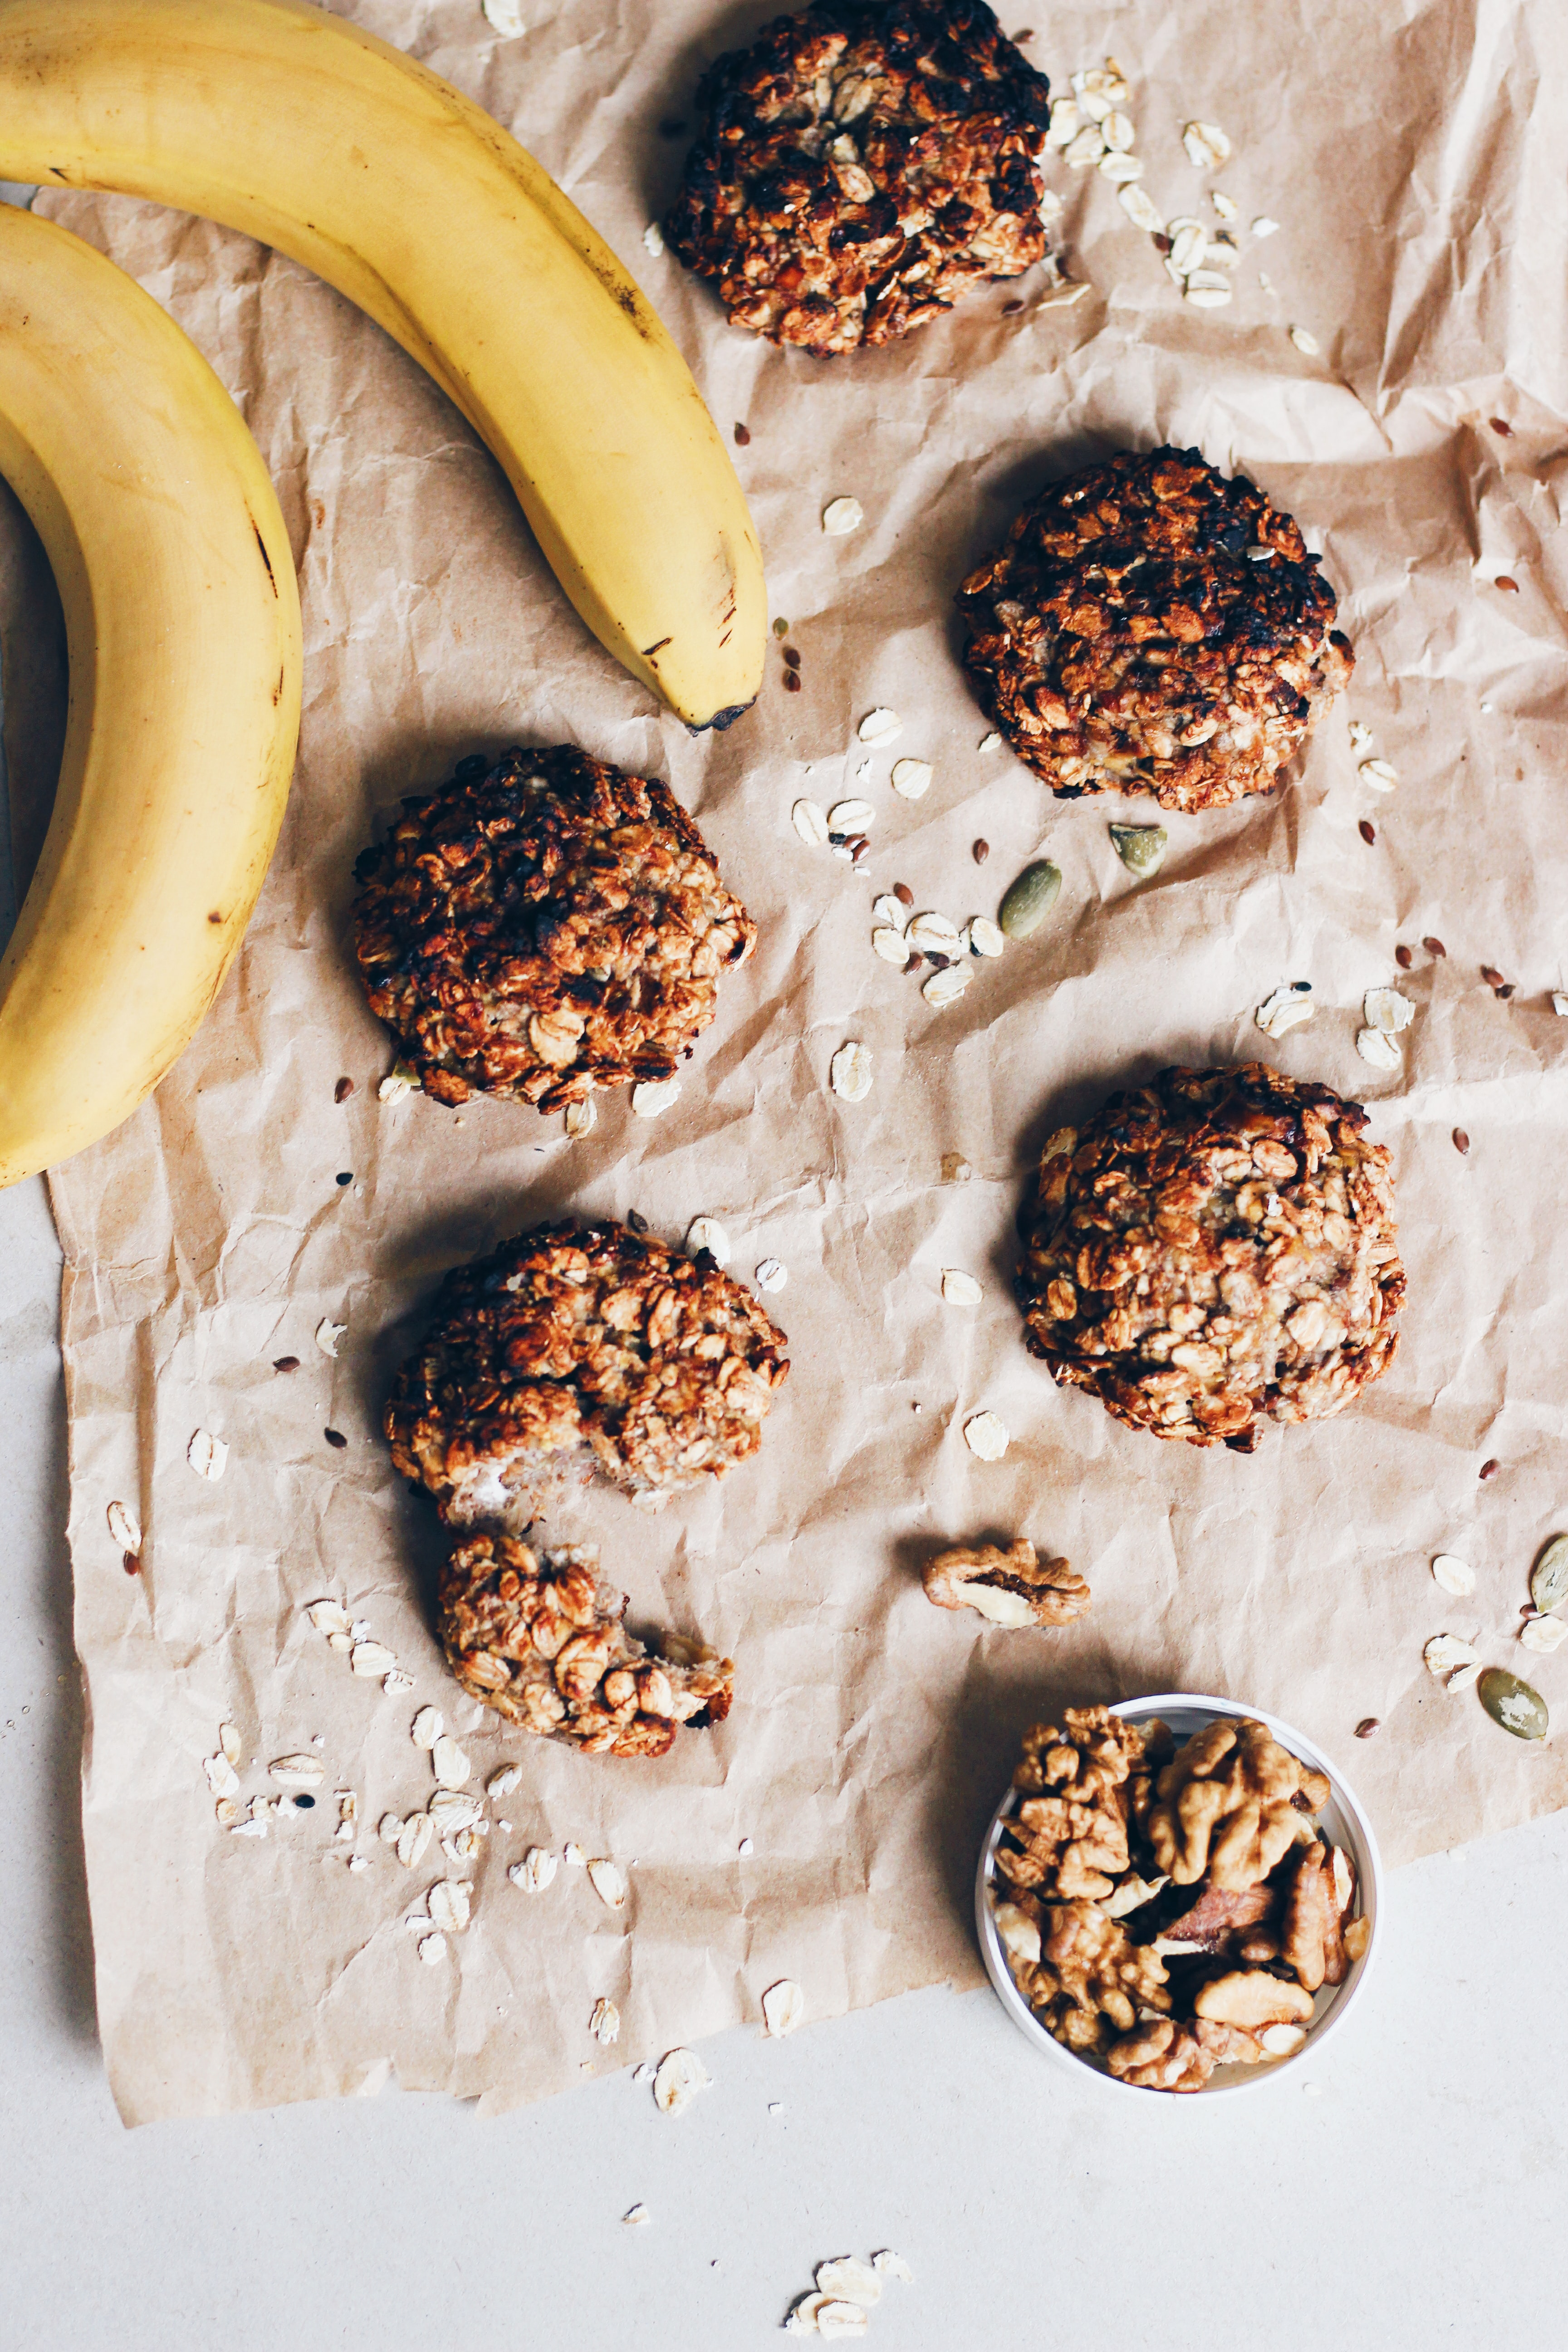 banana fruit with nuts